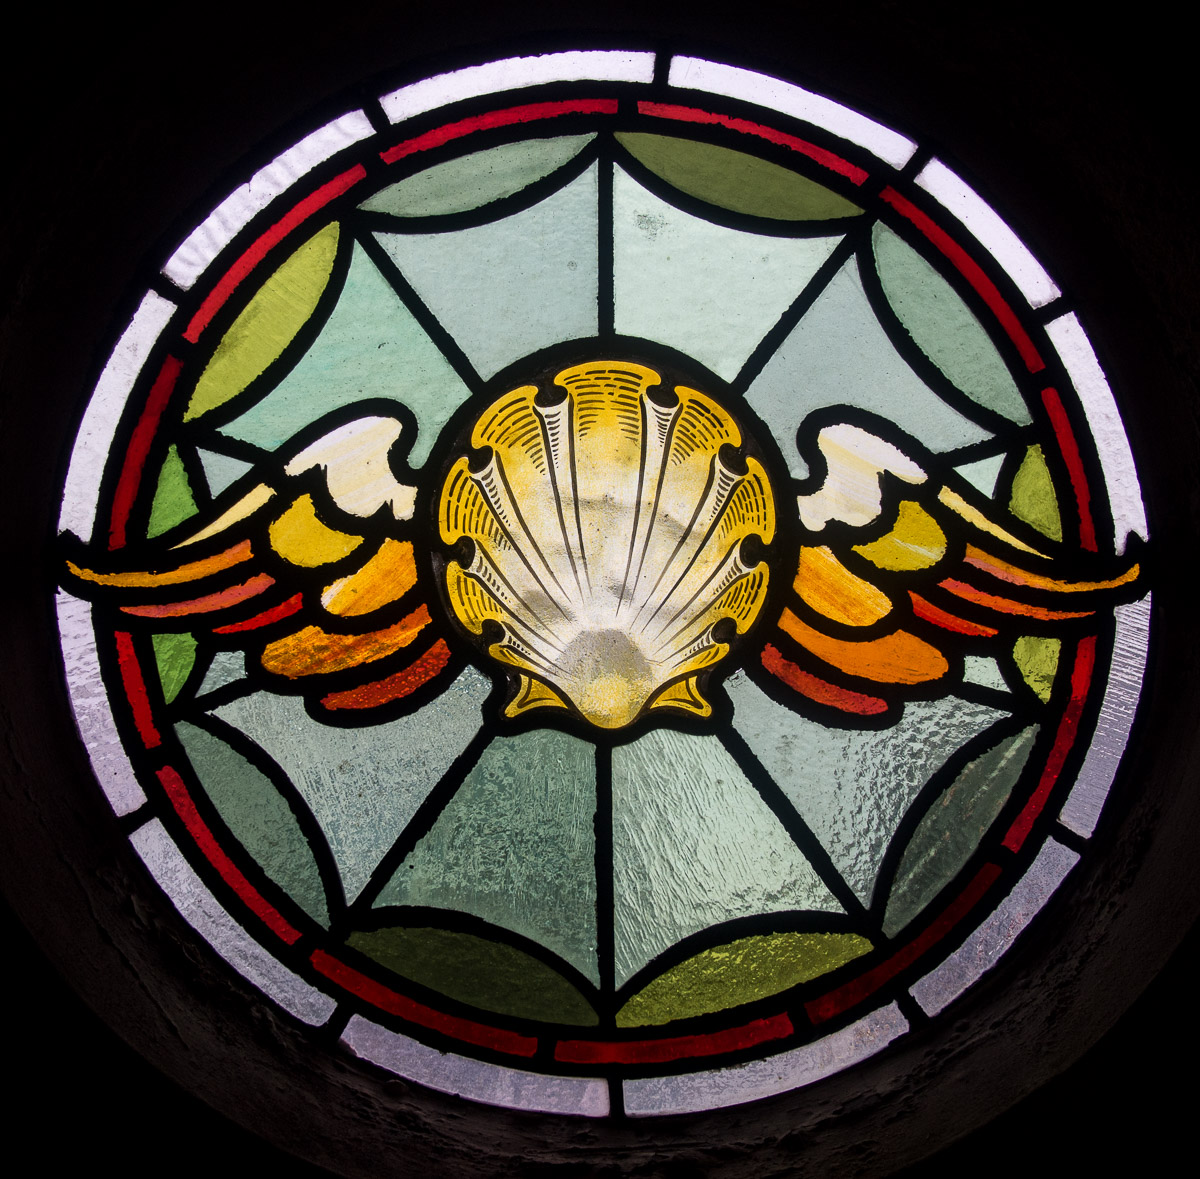 Detail of the stained glass windows